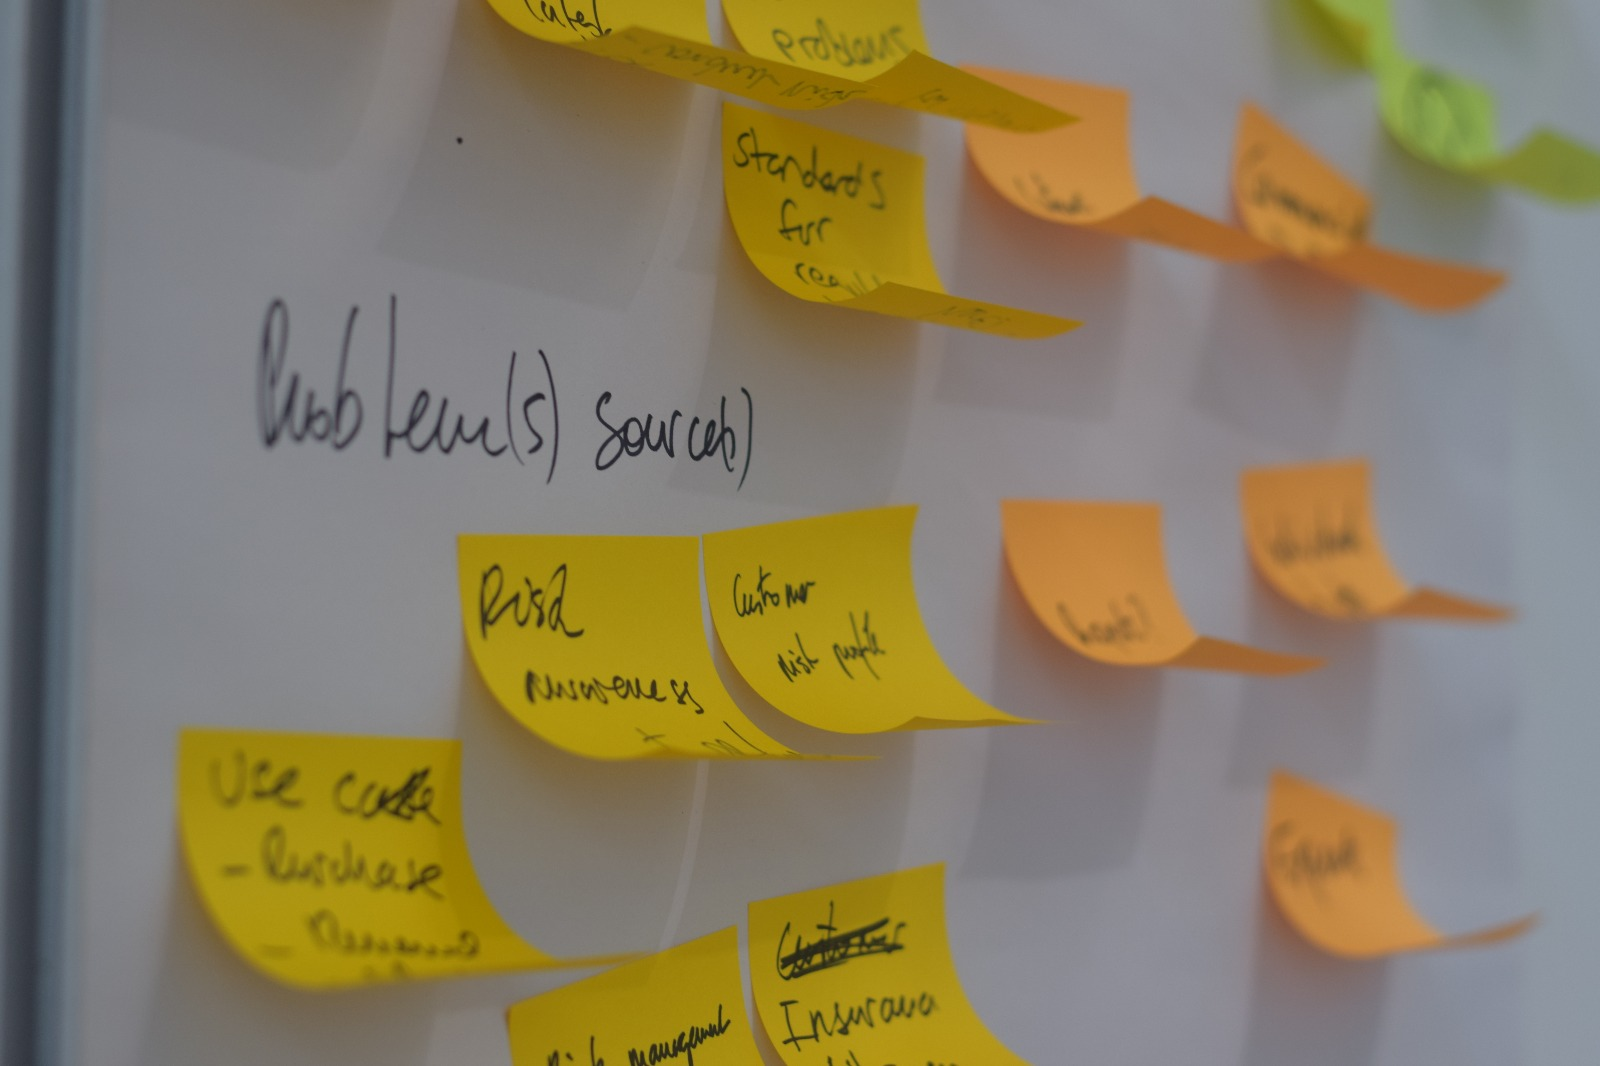 The problems facing brokers post-it notes